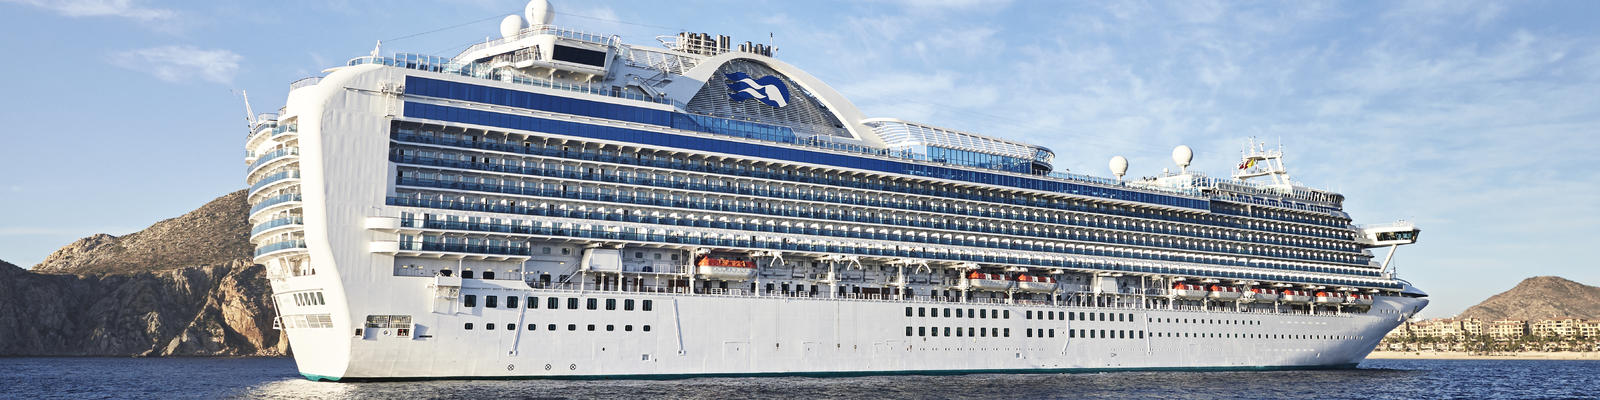 9 Tips For Planning Short Cruises Cruise Critic